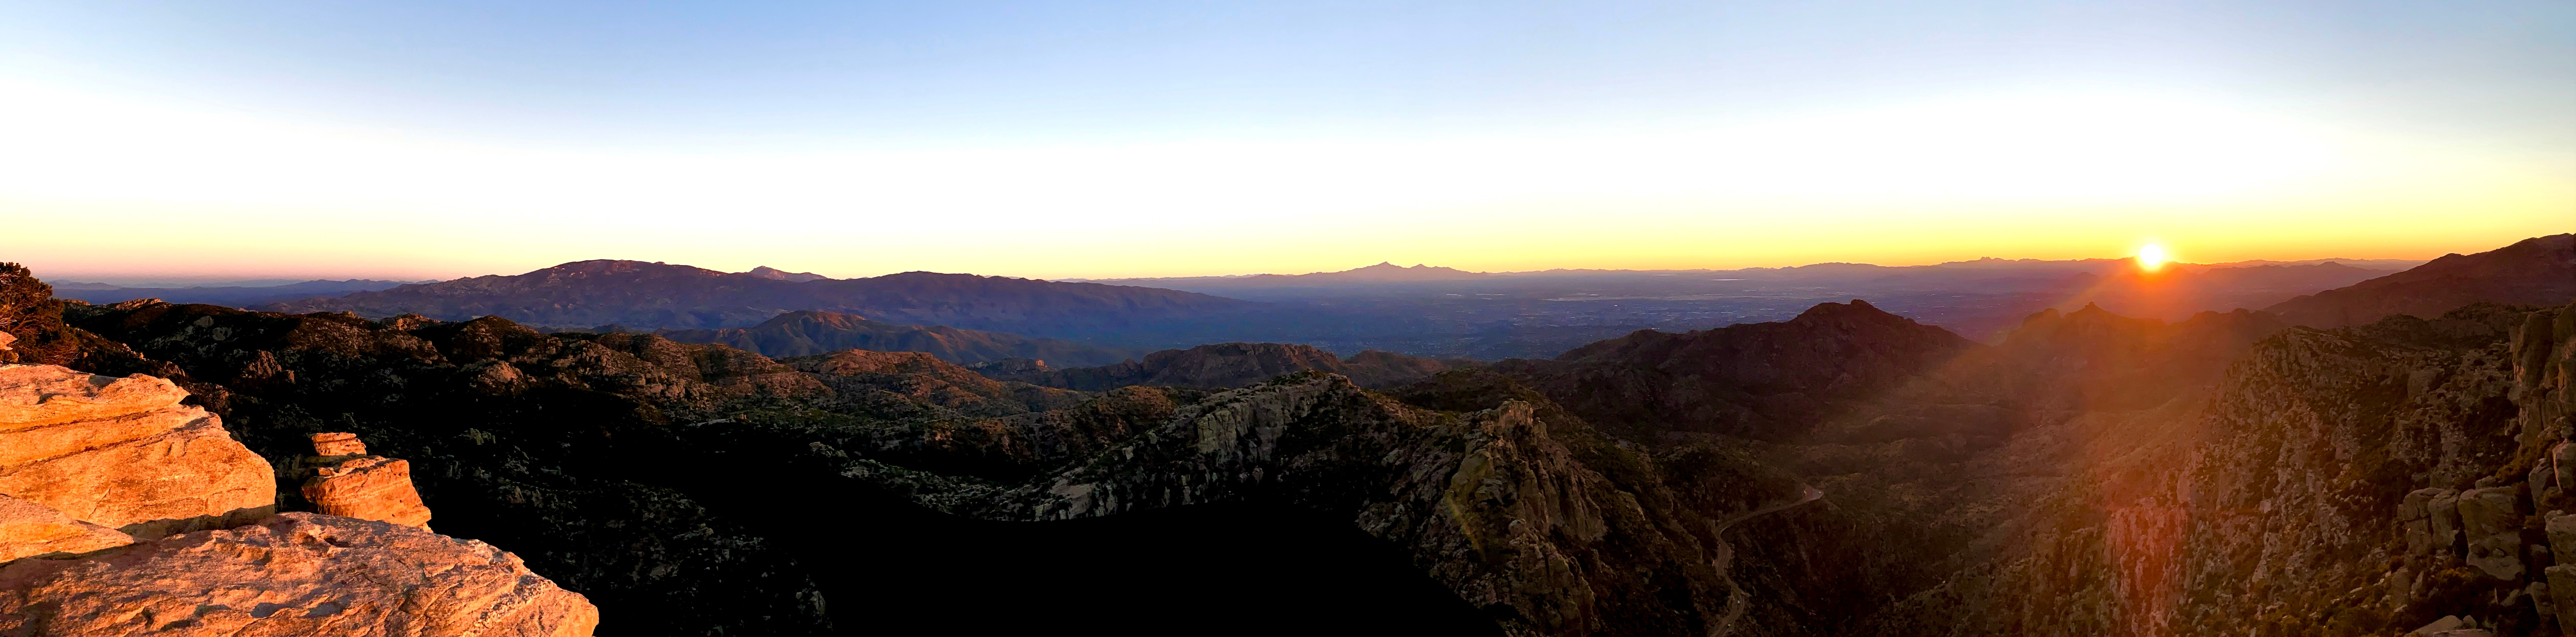 Panoramic view of the sun coming over the horizon.